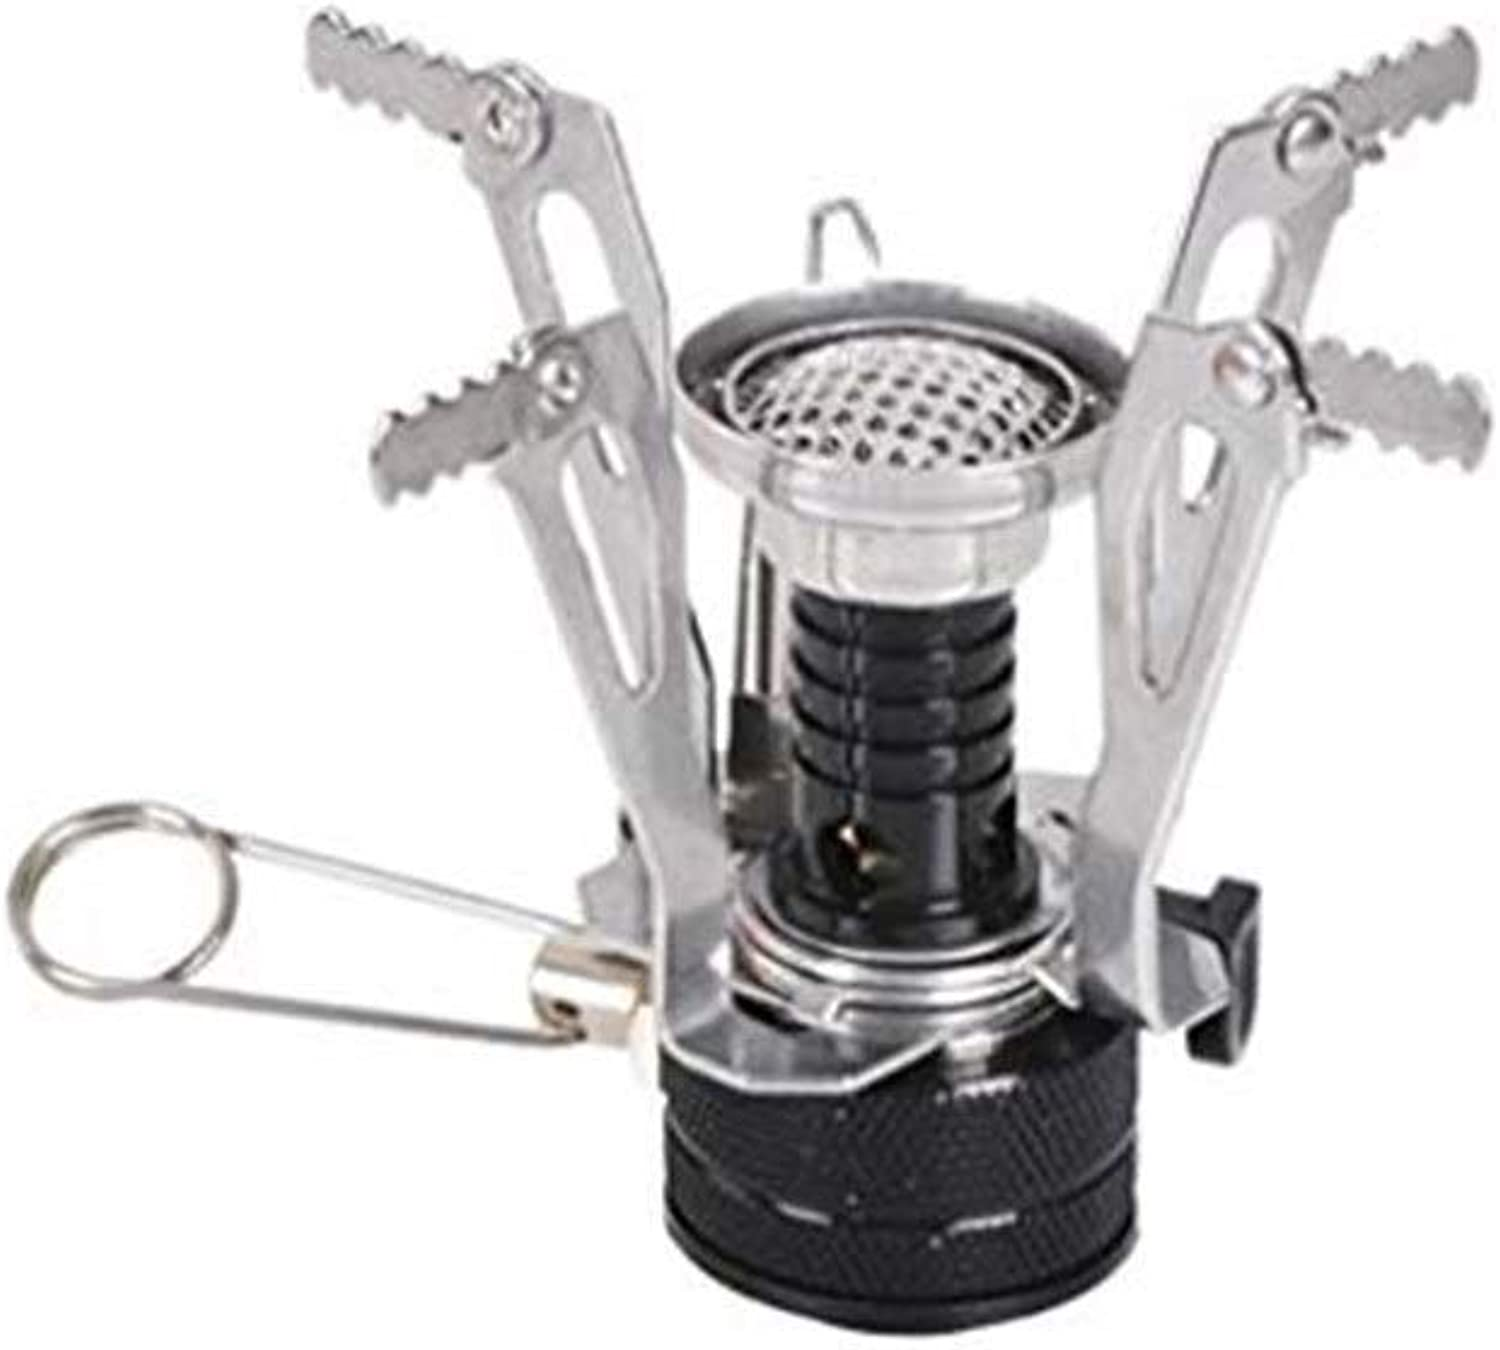 Camping Cooking Utensil Camping Stove, Outdoor Portable Stove Multifunction Burner 3000w Micro Ultralight Practical Stove Head With Piezoelectric Autoignition Suitable For Outdoor Camping Grill Sto